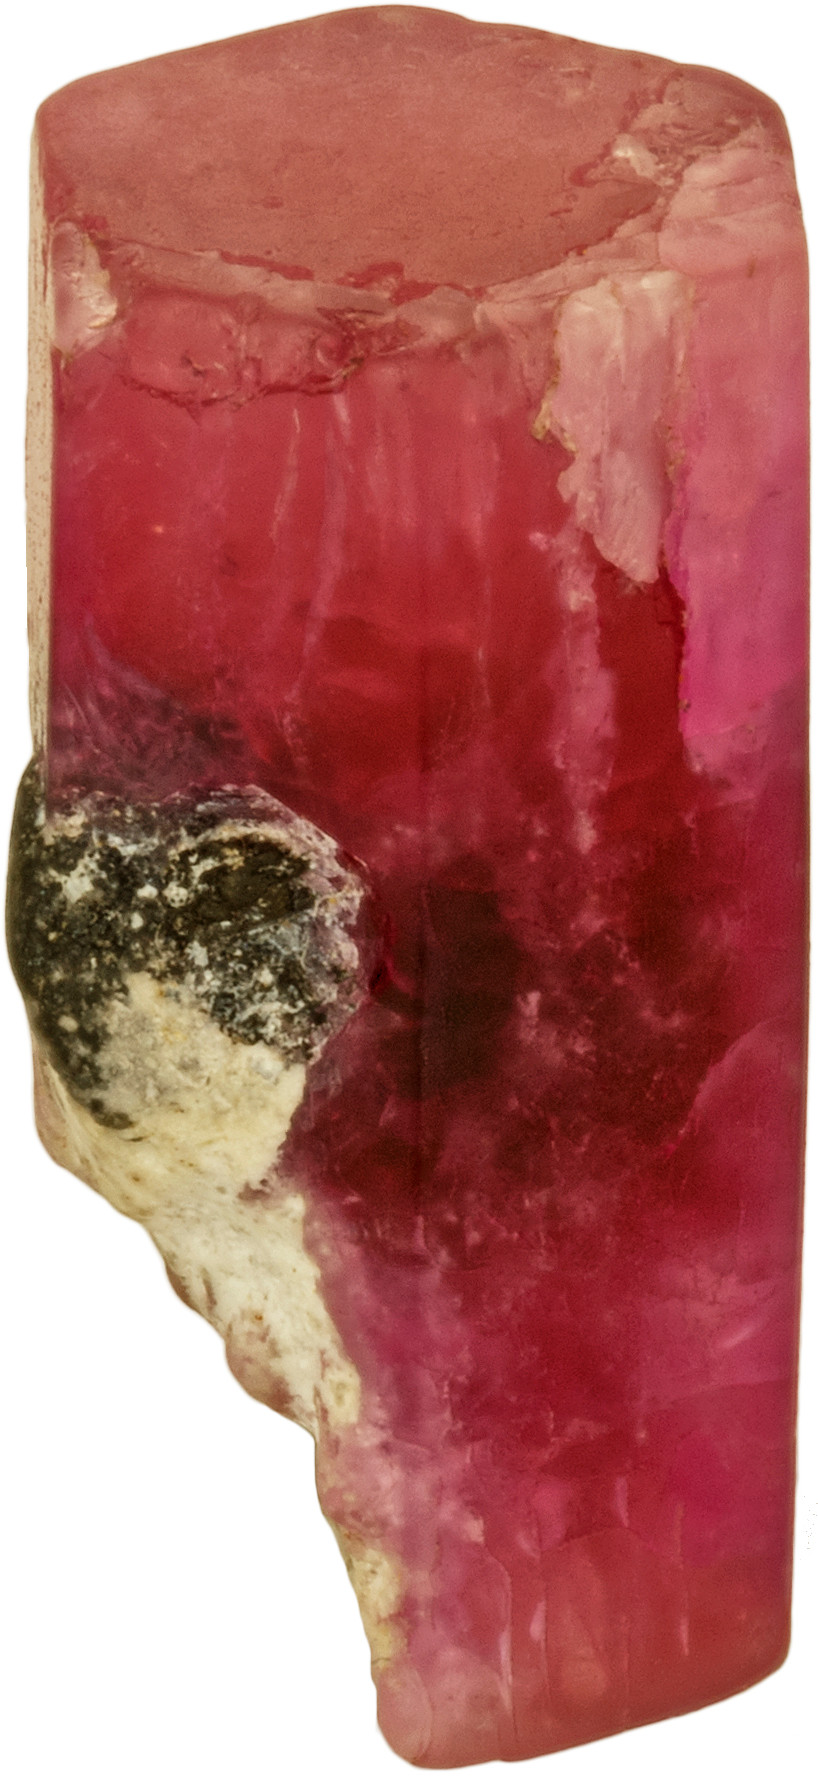 Bixbyite inclusion in a red beryl prism